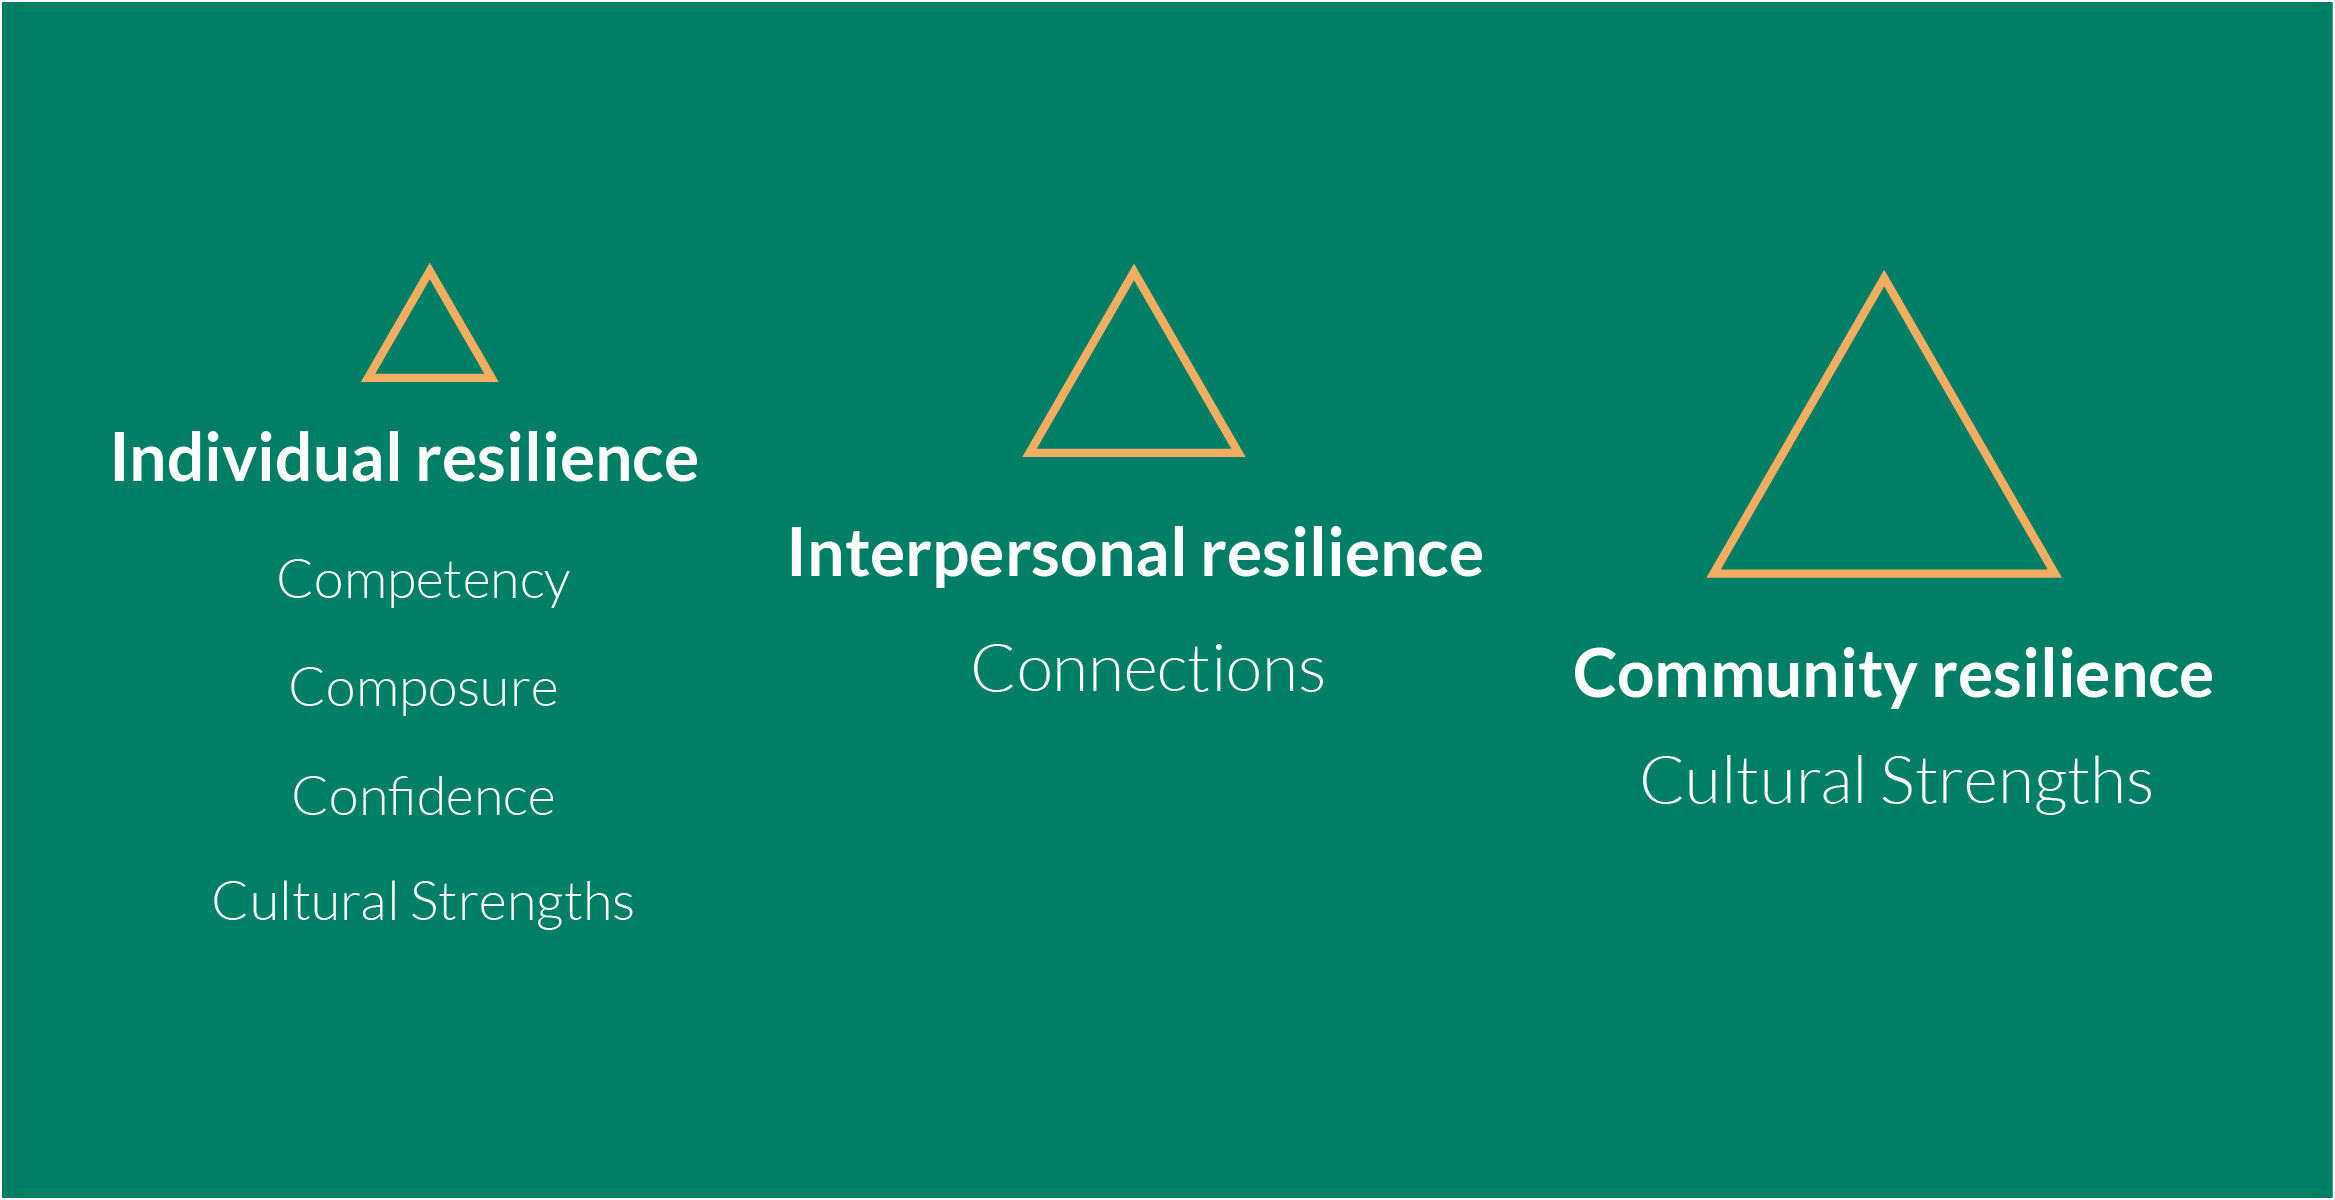 Three tiers of resilience